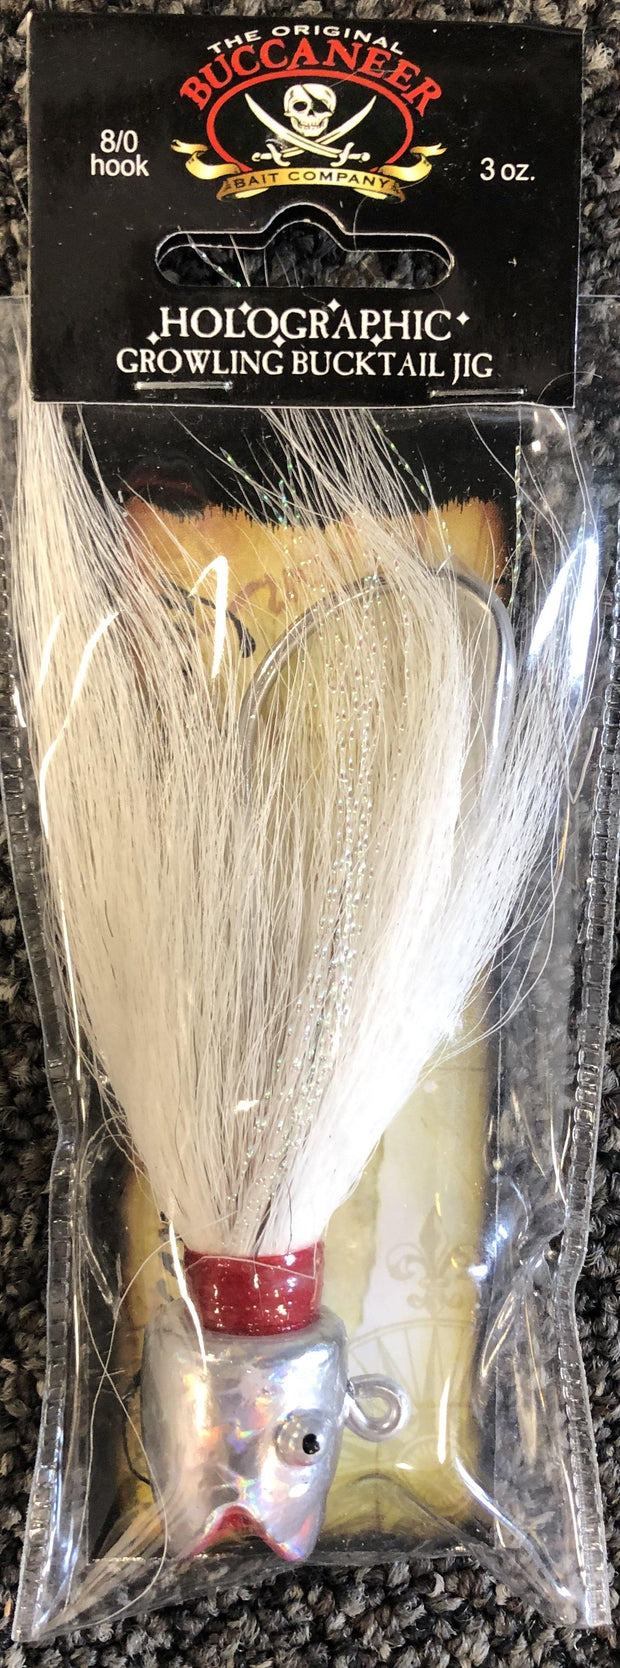 Buccaneer Holographic Growling  Bucktail Jig